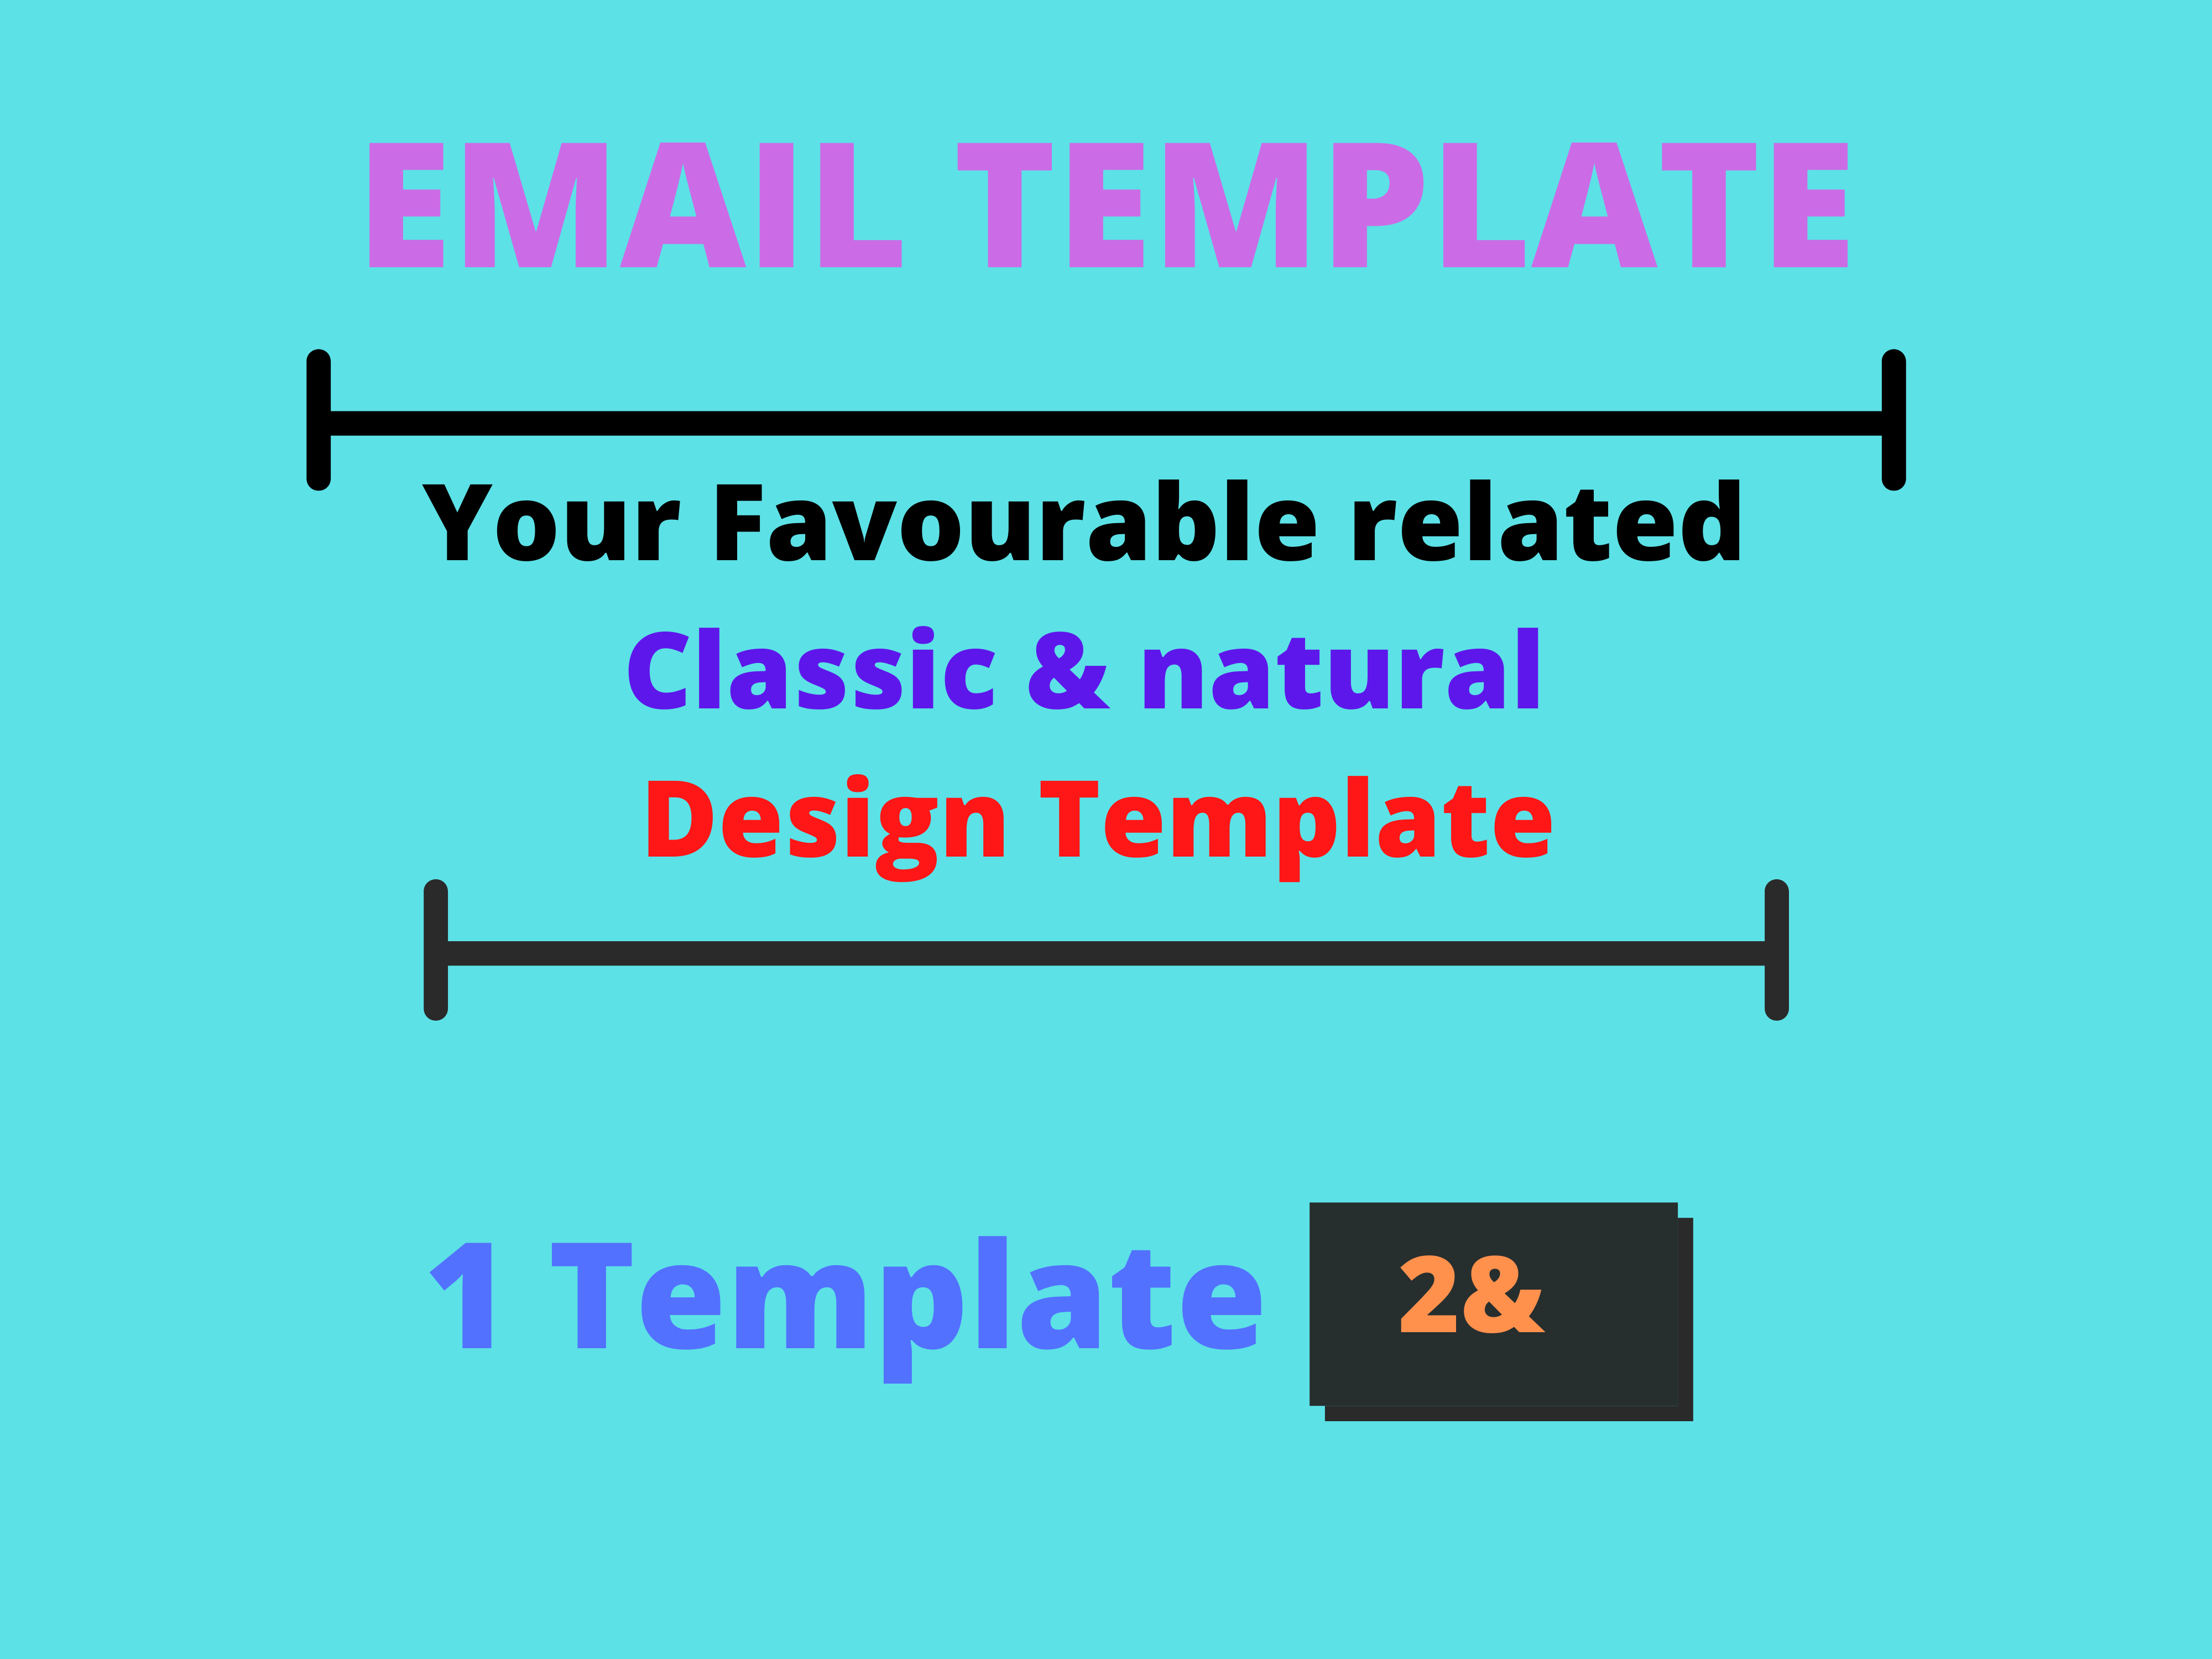 I will present you Favourable related Classic & natural Design Template